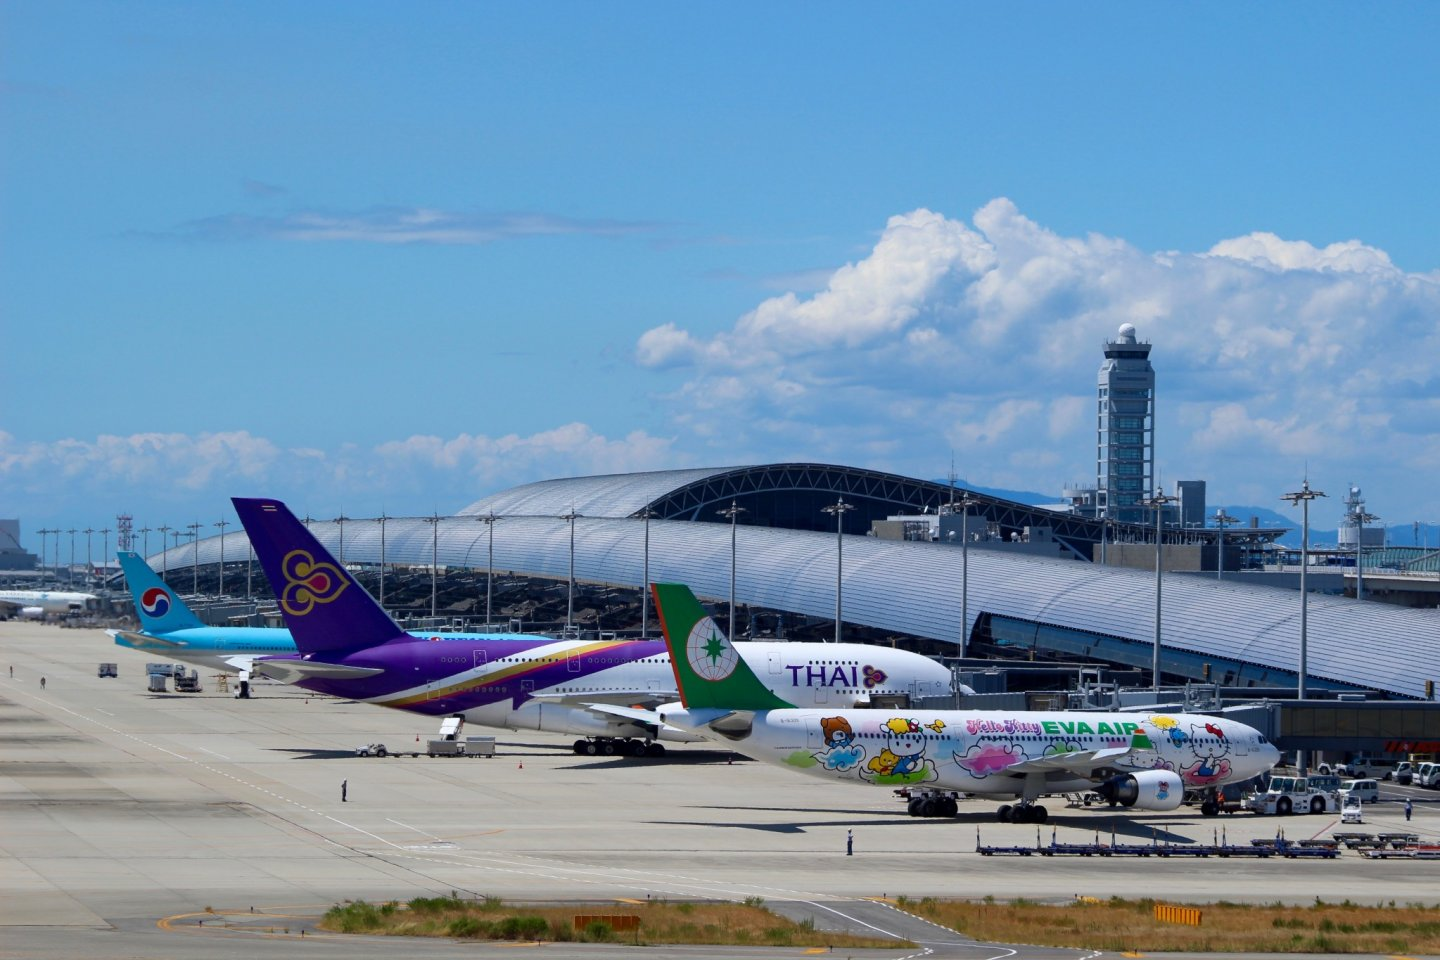 Planes and Kansai International Airport\'s terminal building.